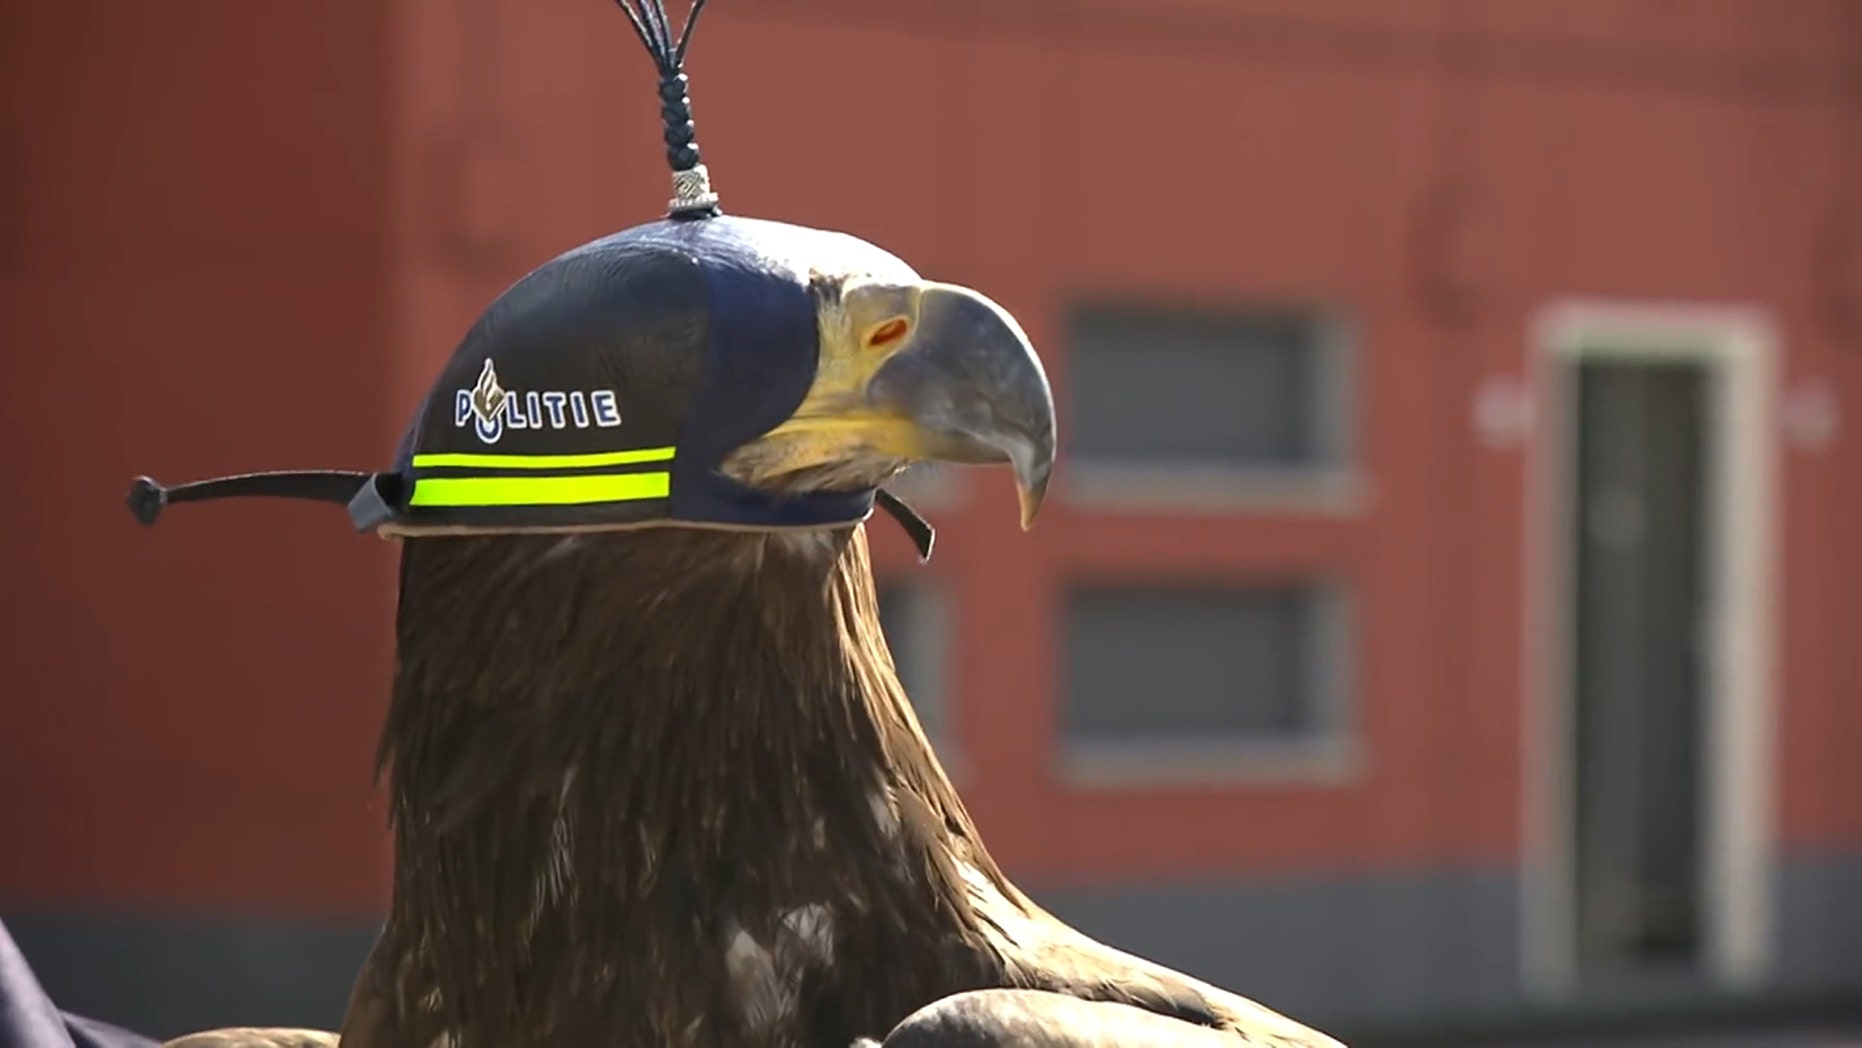 Policing takes flight in the Netherlands, with eagles joining Dutch officers to combat hostile drones.